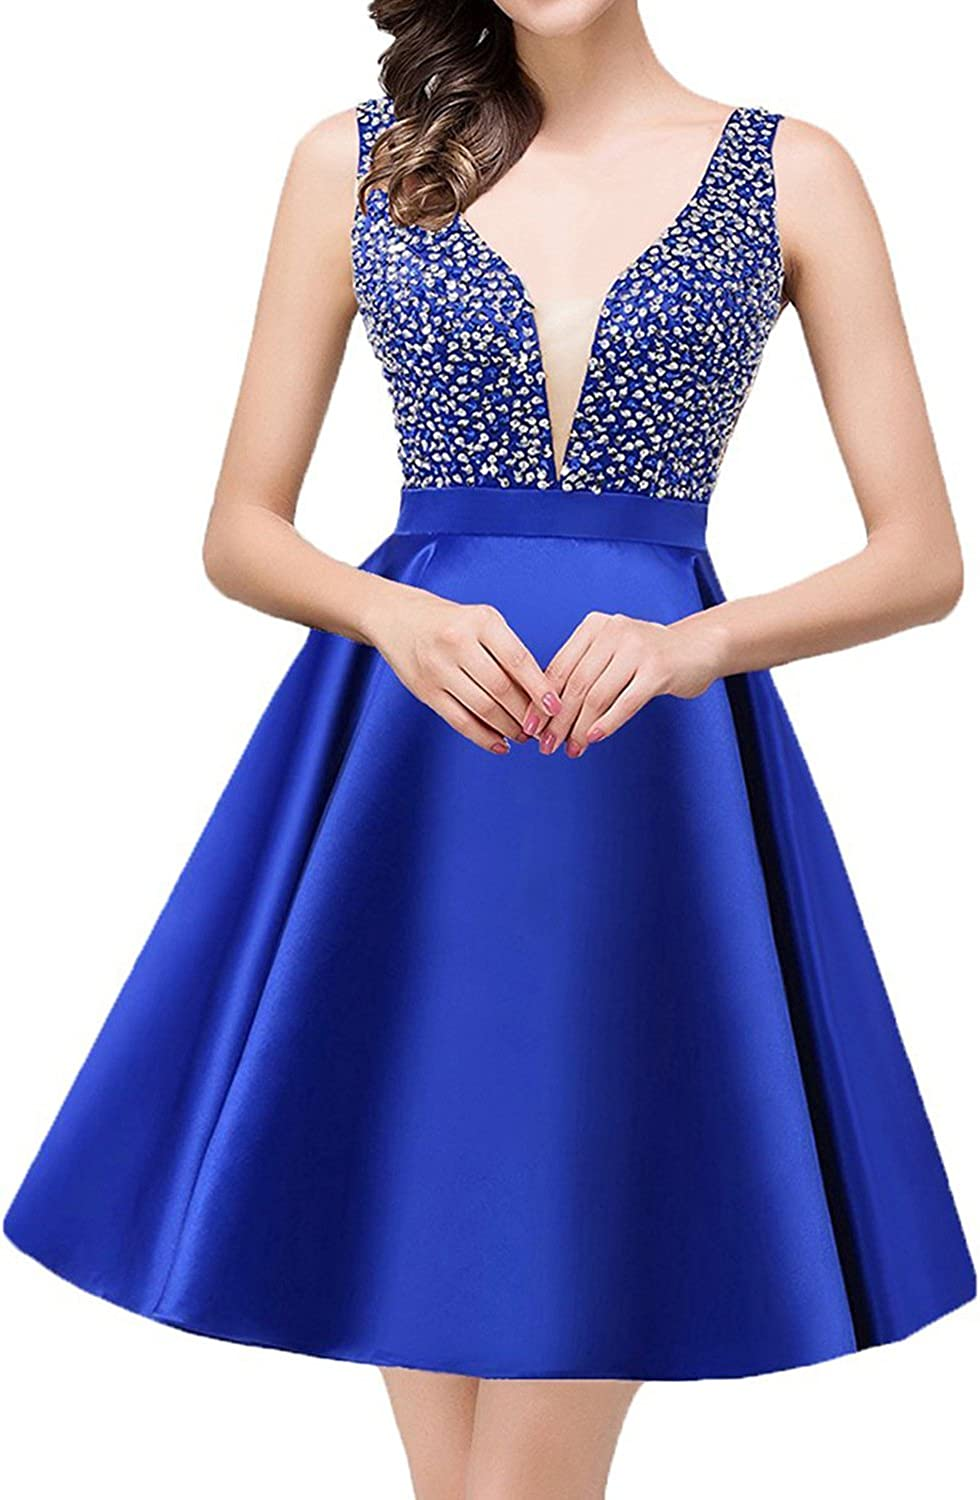 JoyVany Women Sexy VNeck Sequin Homecoming Dresses Short 2018 Prom Gowns JH029